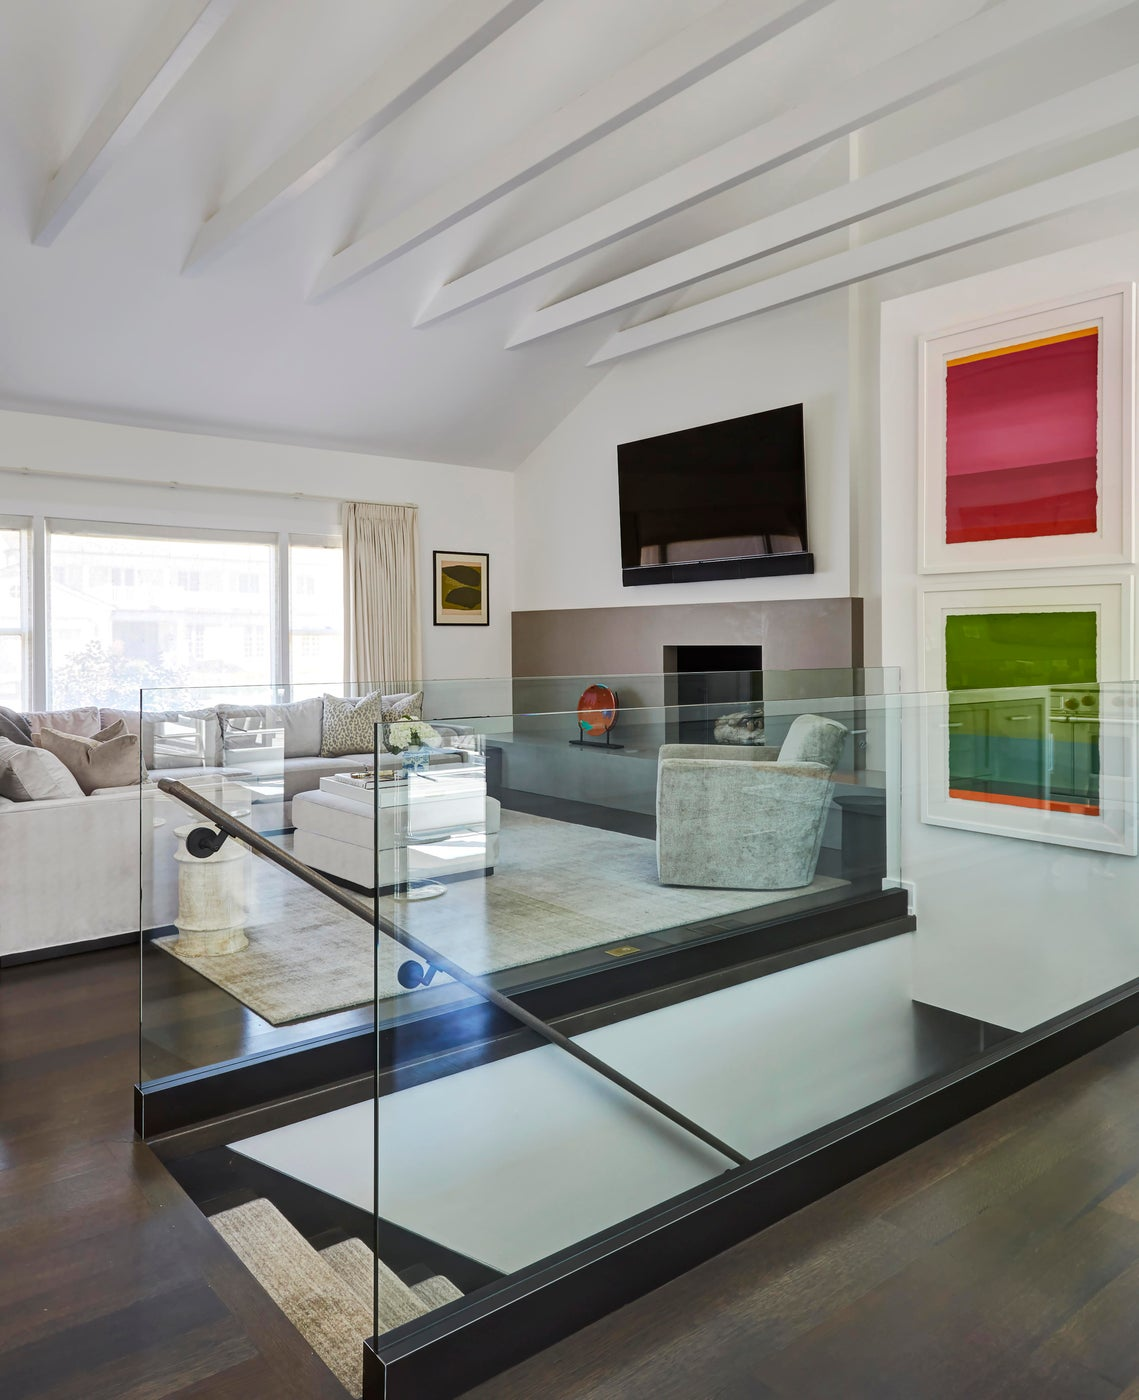 White Modern Kitchen Gut Rehab in Wilmette, IL, living room and stairwell